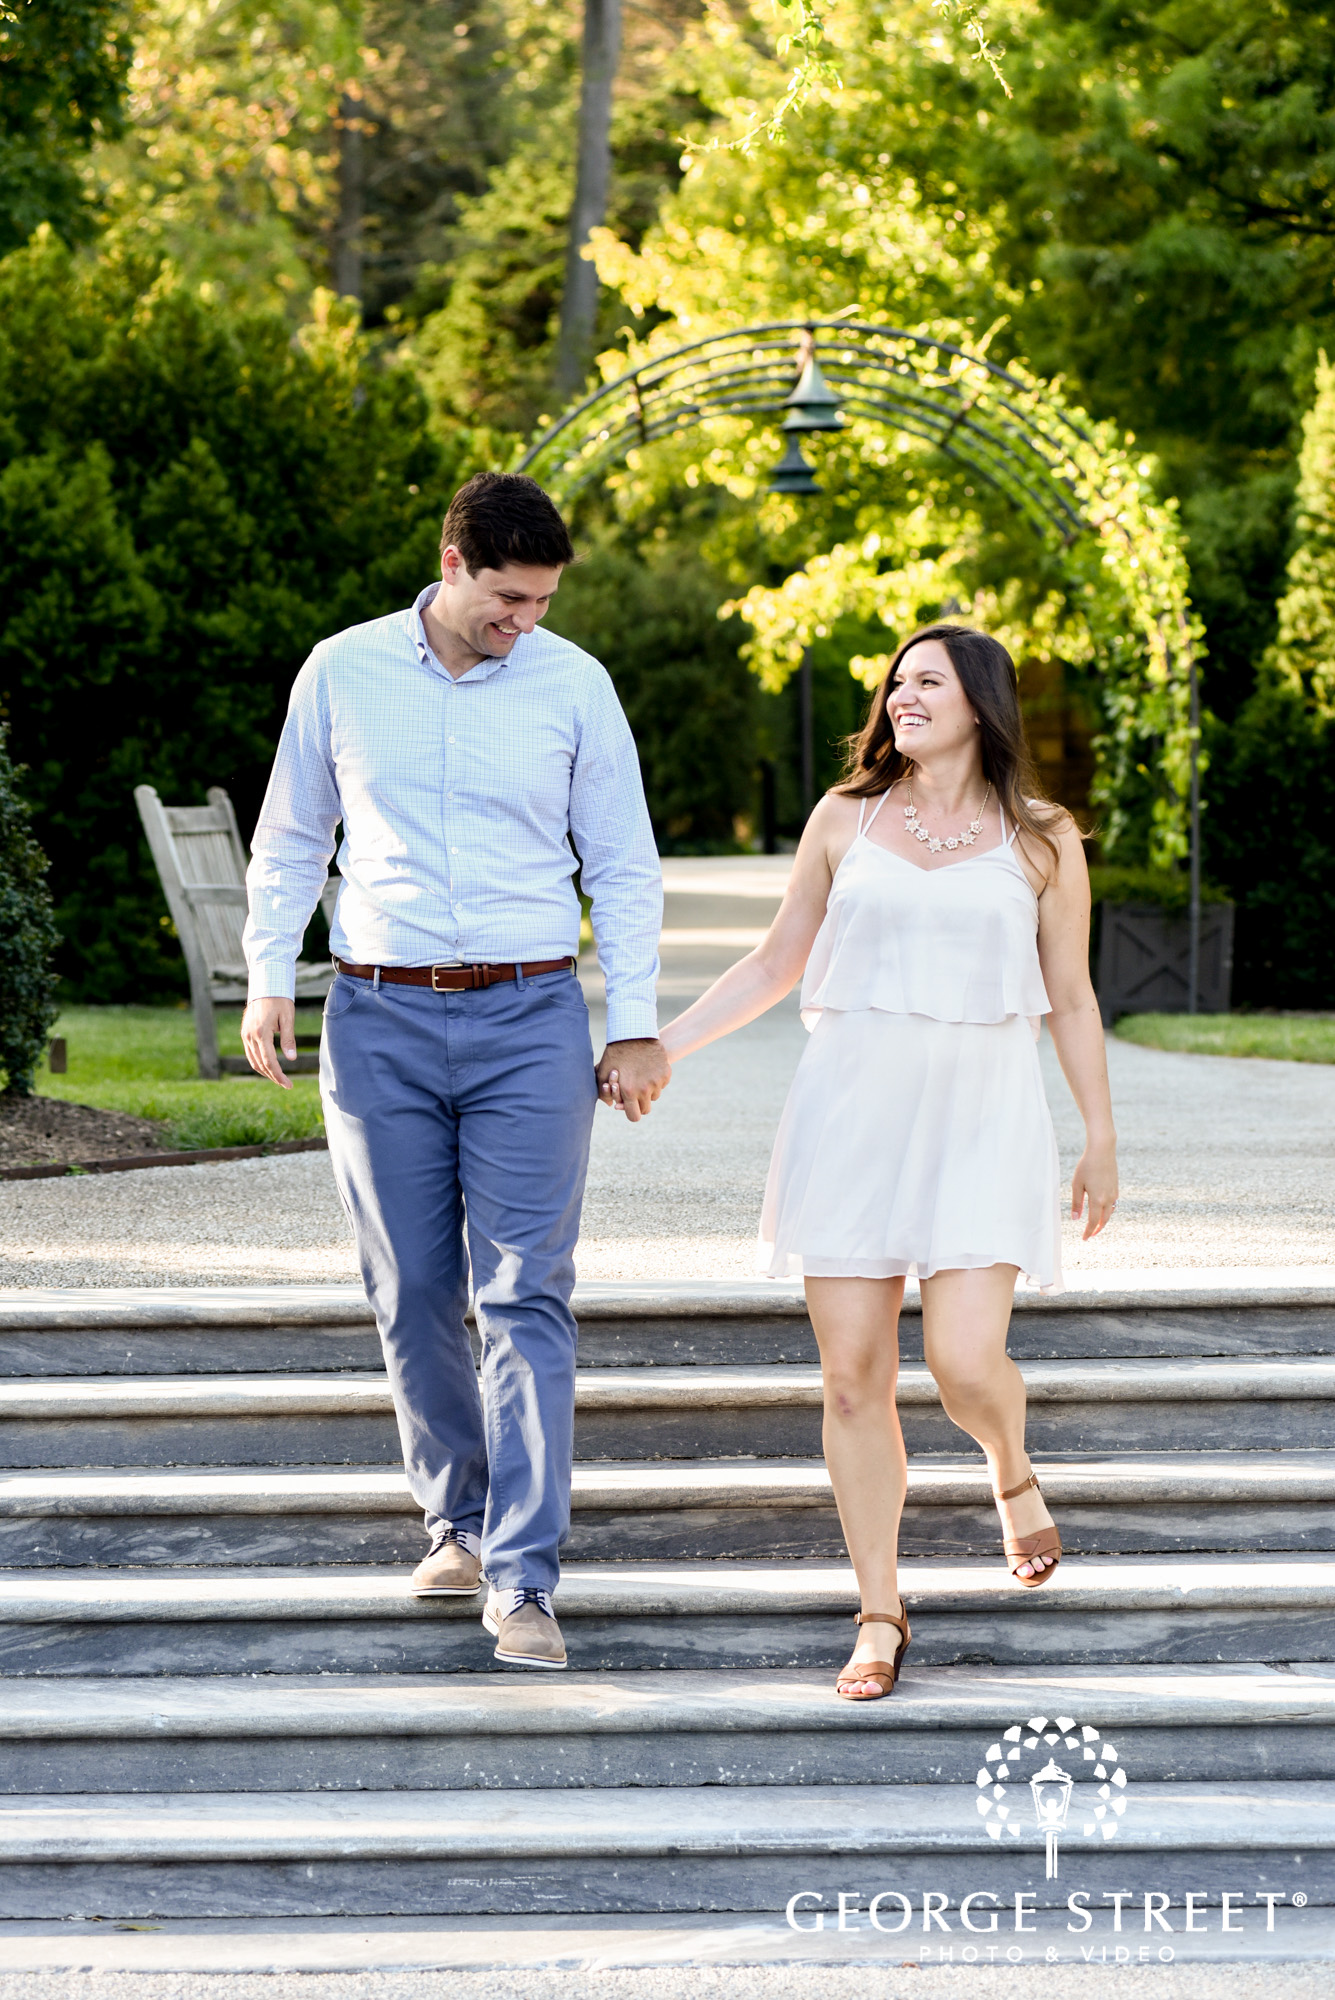 longwood gardens philadelphia summer outdoor engagement photography session candid 2